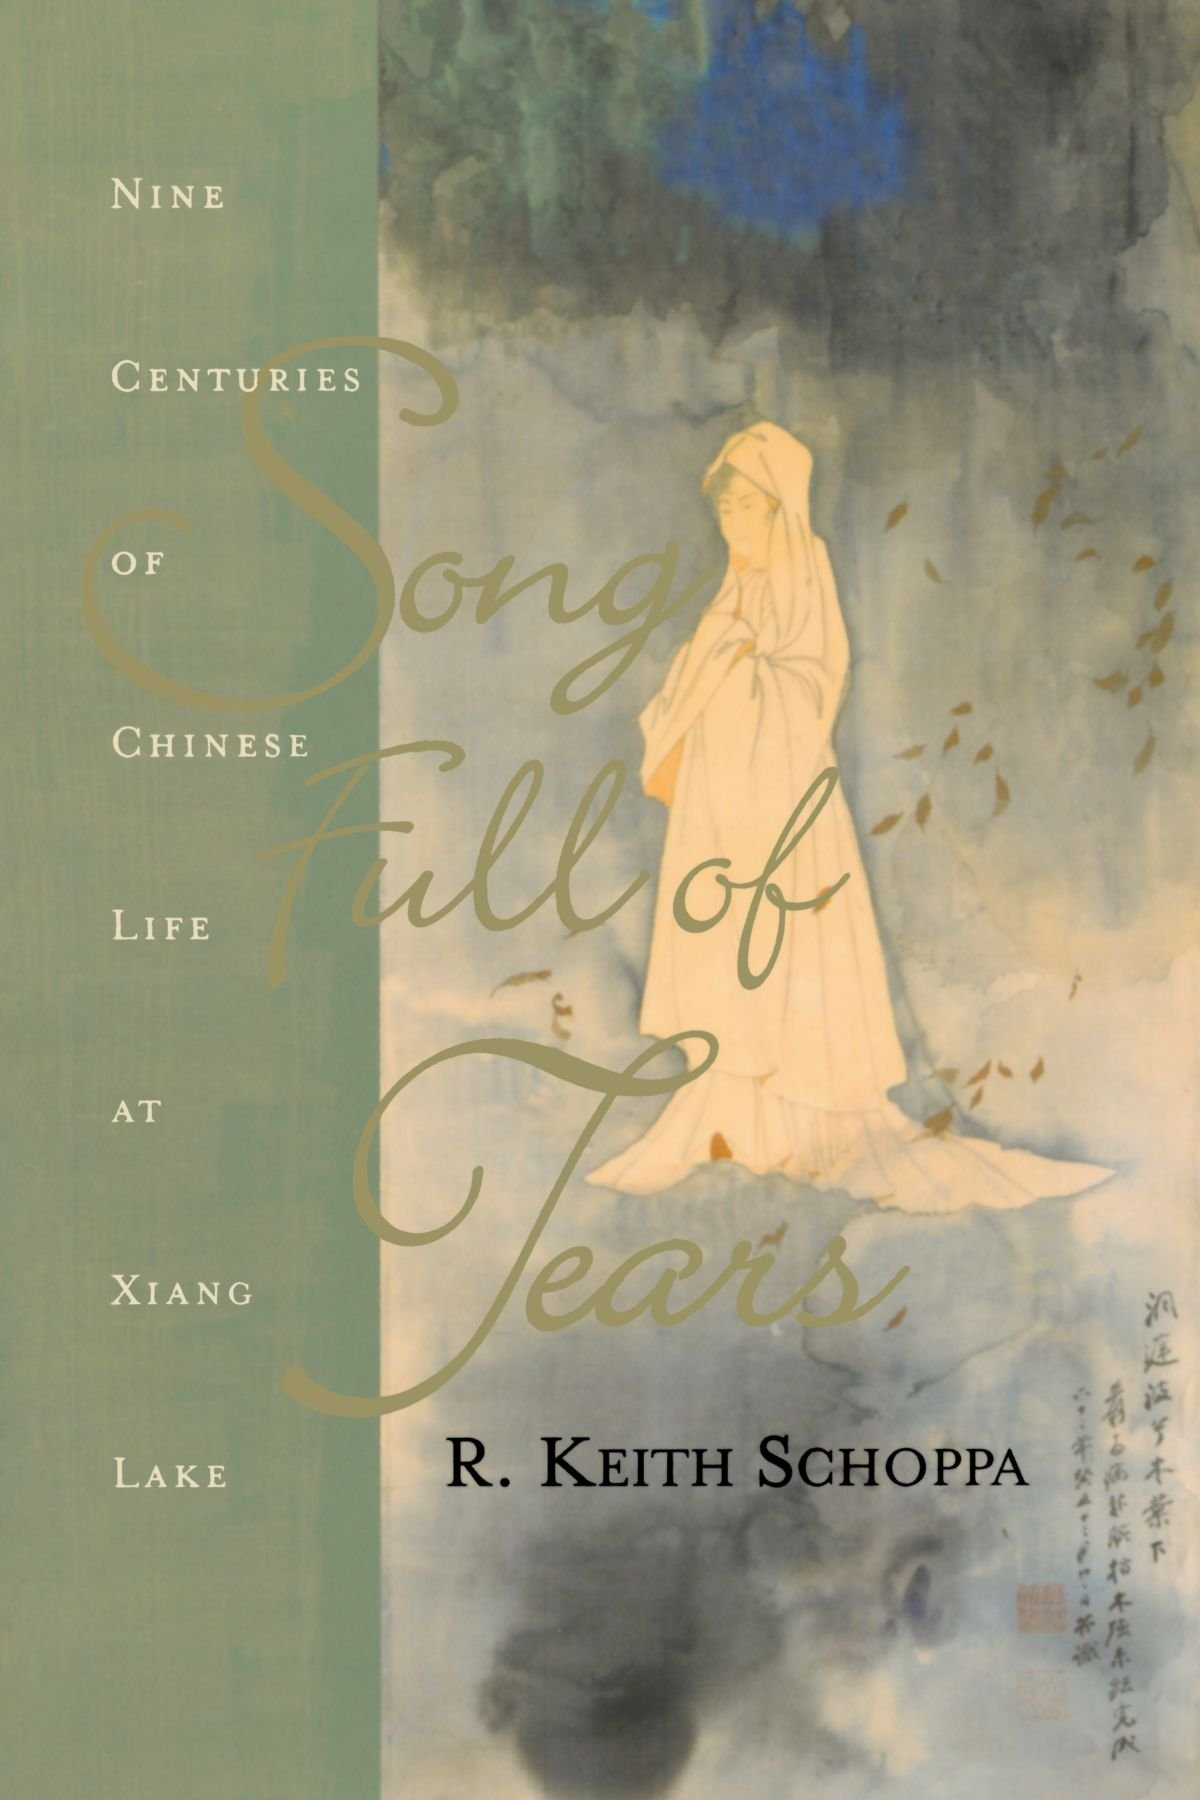 Download song Full of Tears: Nine Centuries of Chinese Life Around Xiang Lake ebook